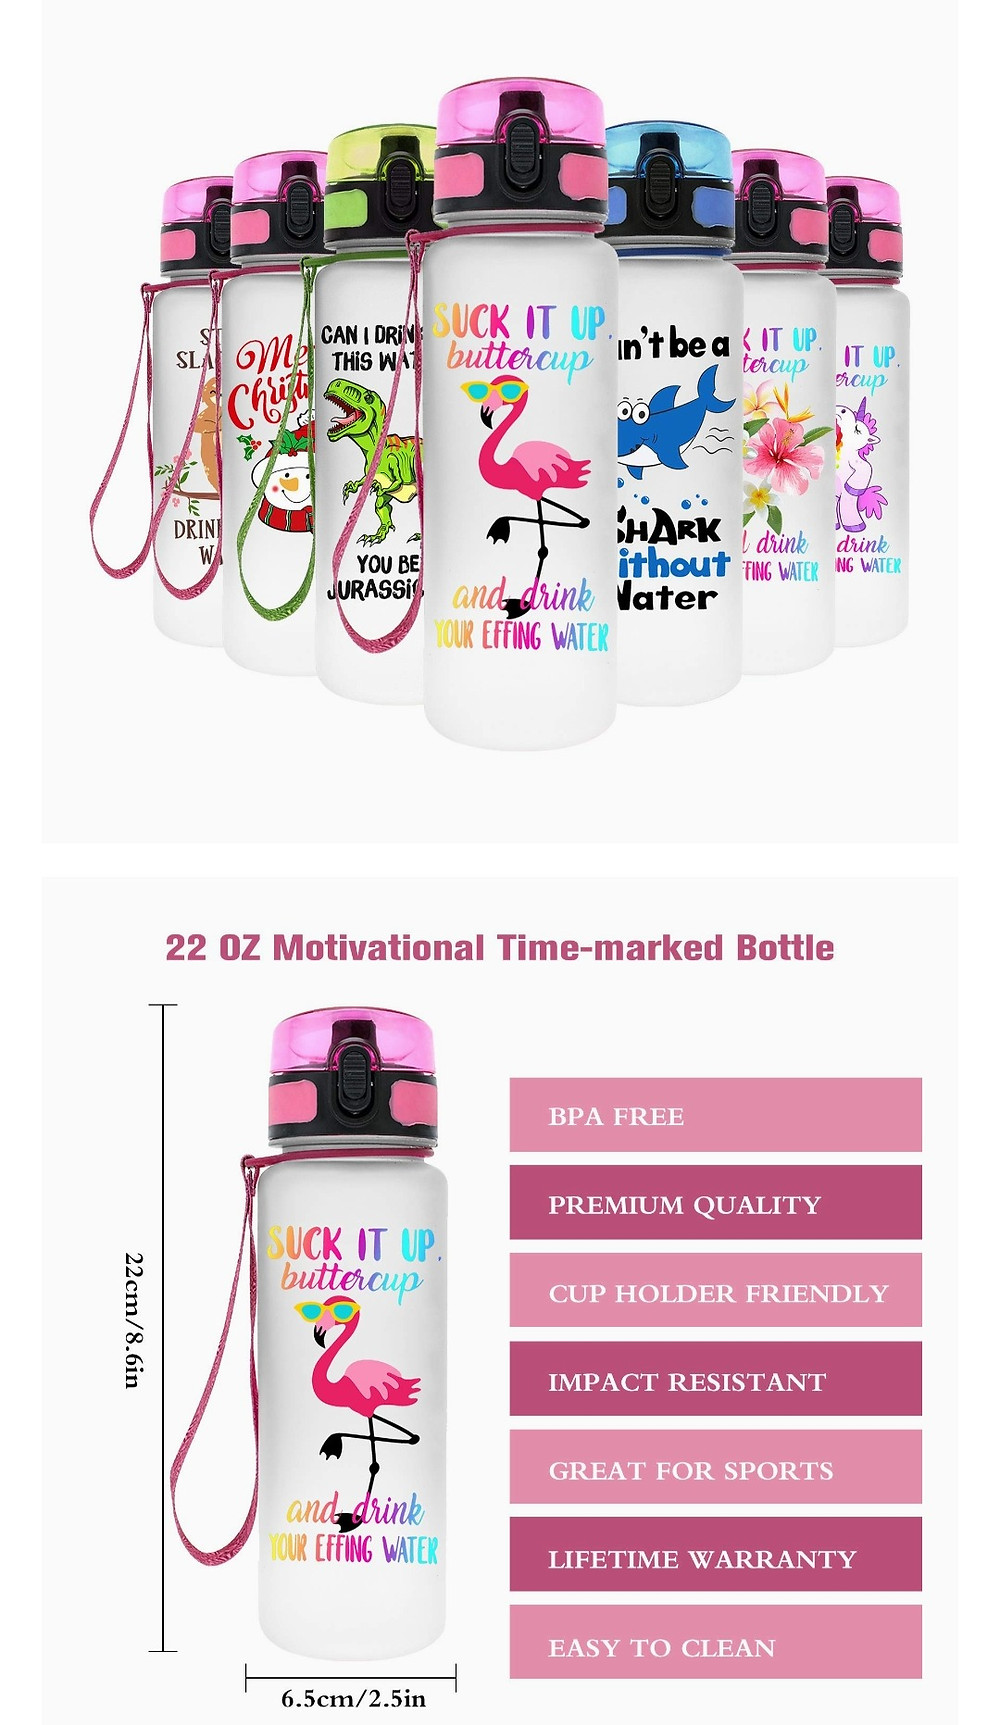 This image shows a selection of water bottles with a flamingo, a dinosaur, a shark and other child friendly designs with wording that says ' Suck it up buttercup, and drink your effing water'